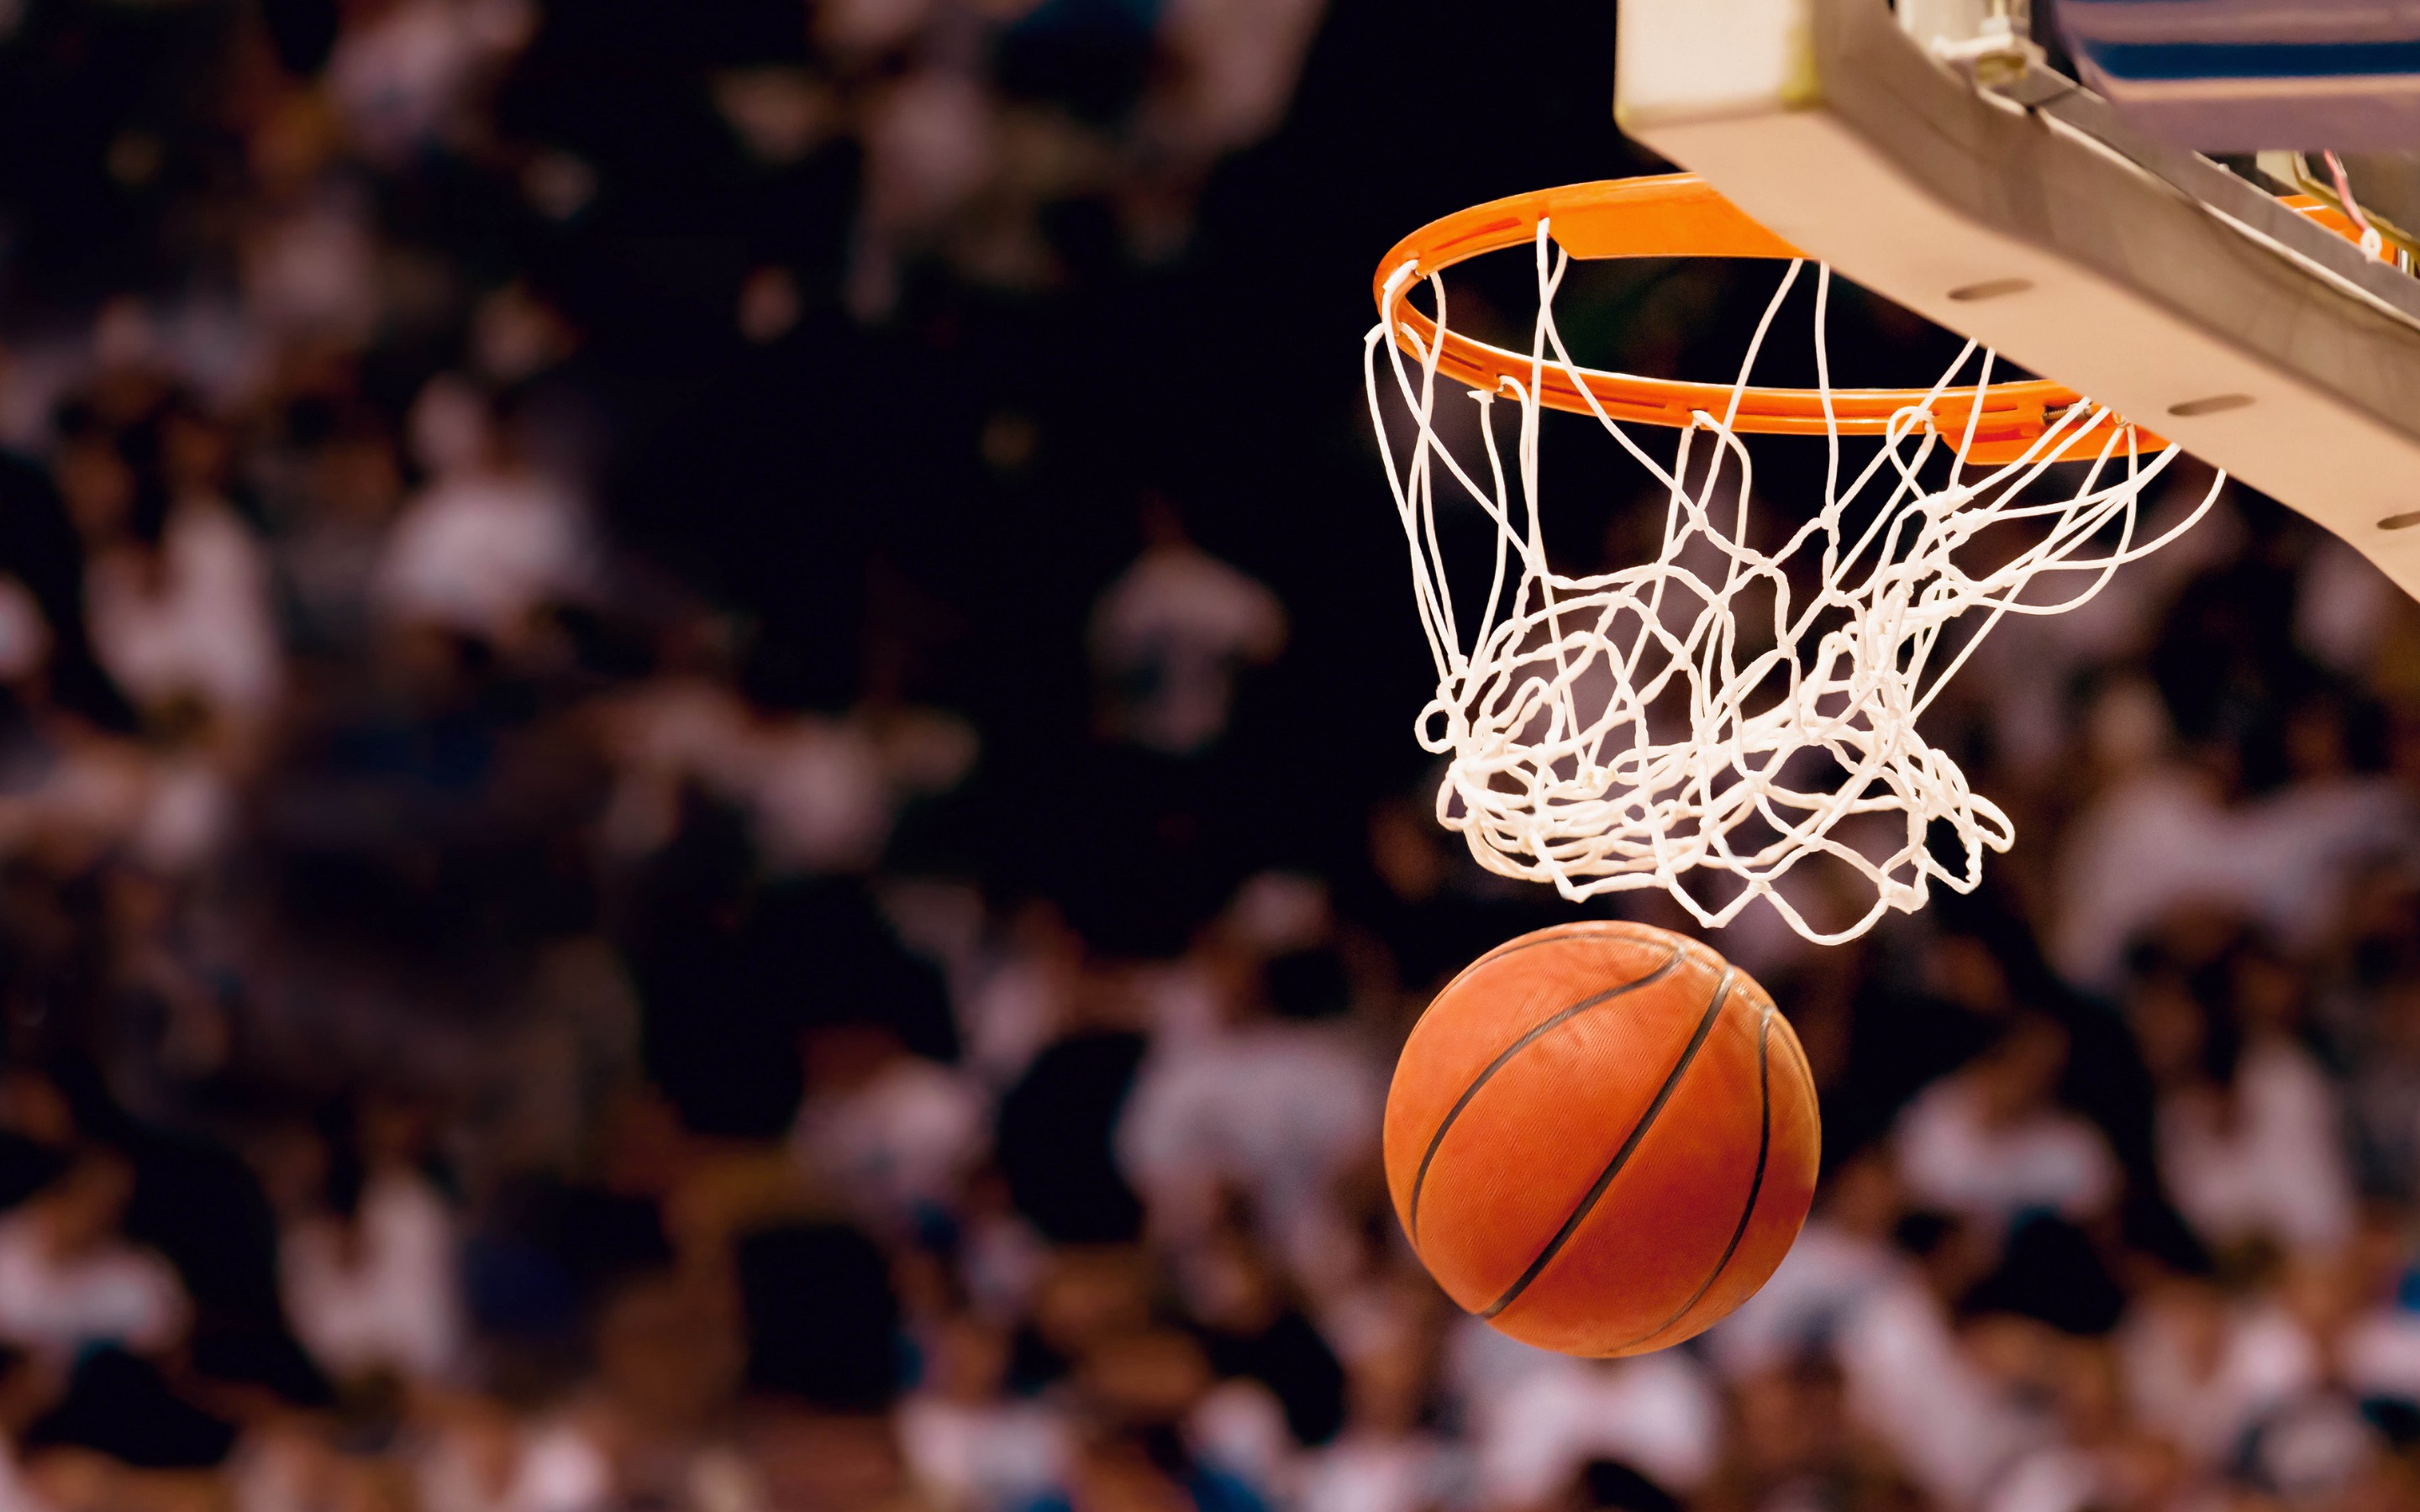 1360x768 Basketball Hd Laptop Hd Hd 4k Wallpapers Images